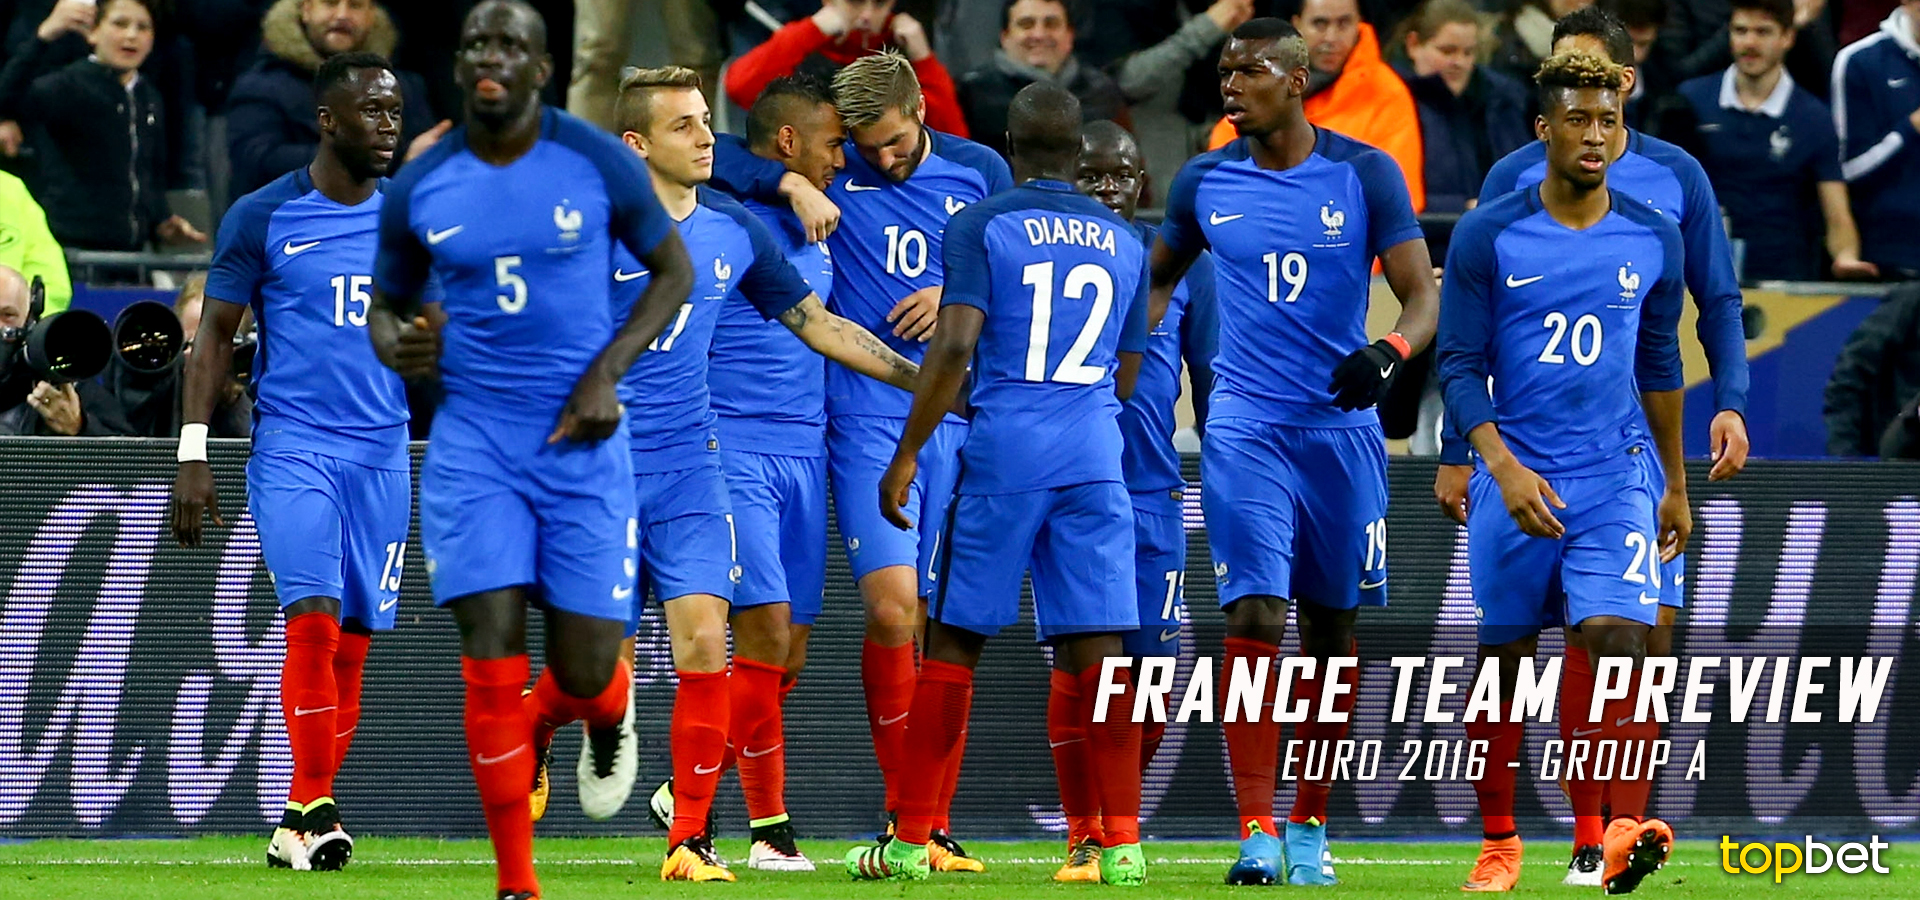 UEFA EURO 2016 Group A – France Team Predictions / Preview